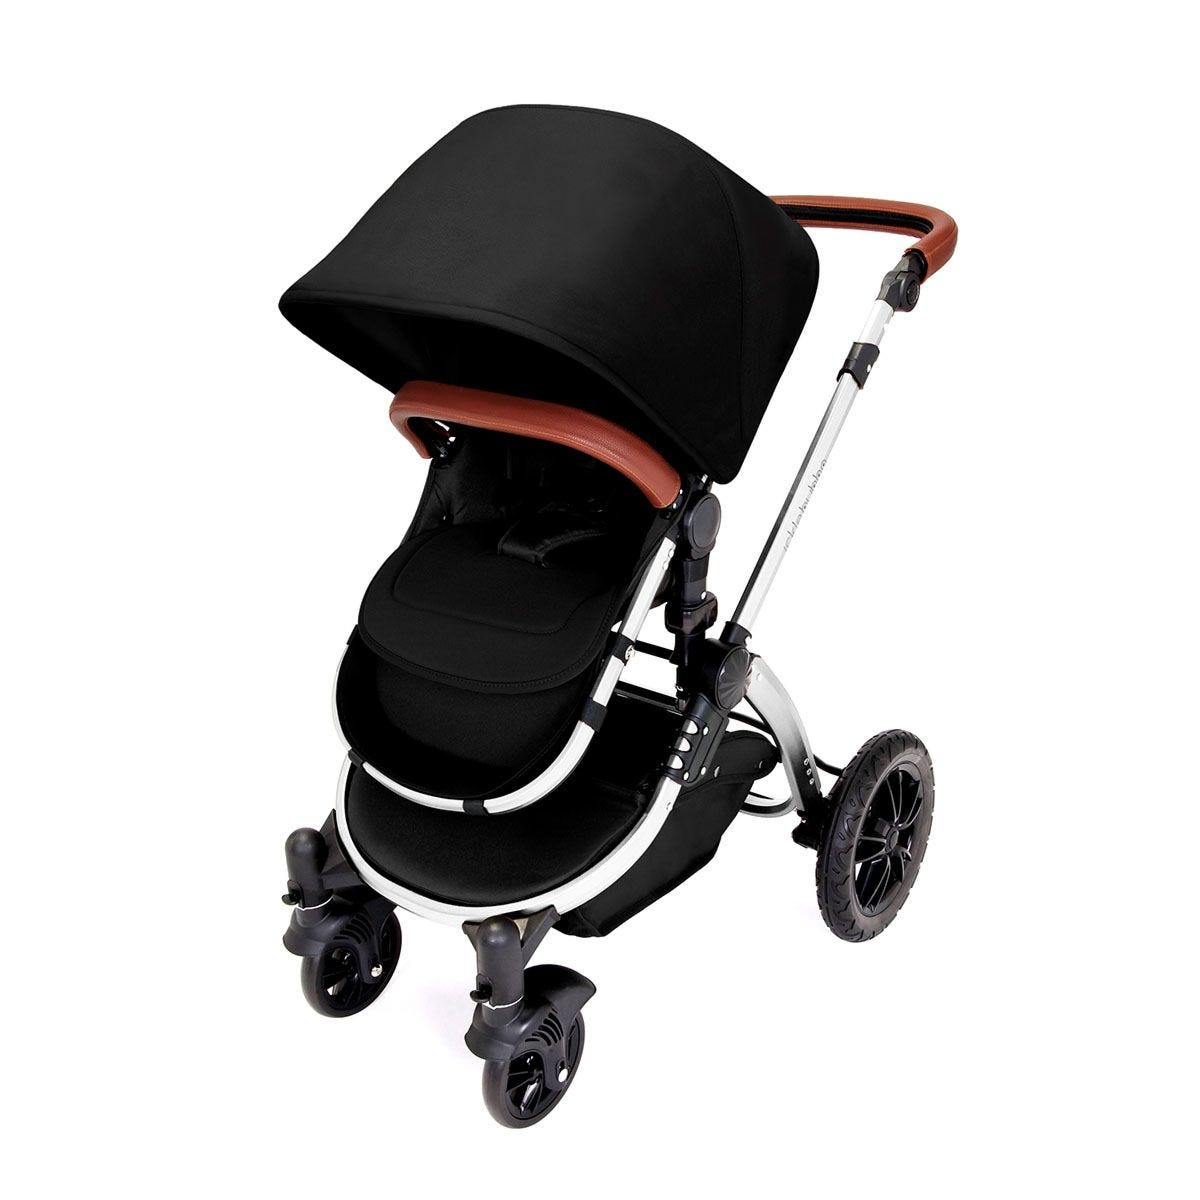 Ickle Bubba Stomp V4 i-Size Travel System with Isofix Base - Midnight on Chrome with Tan Handles